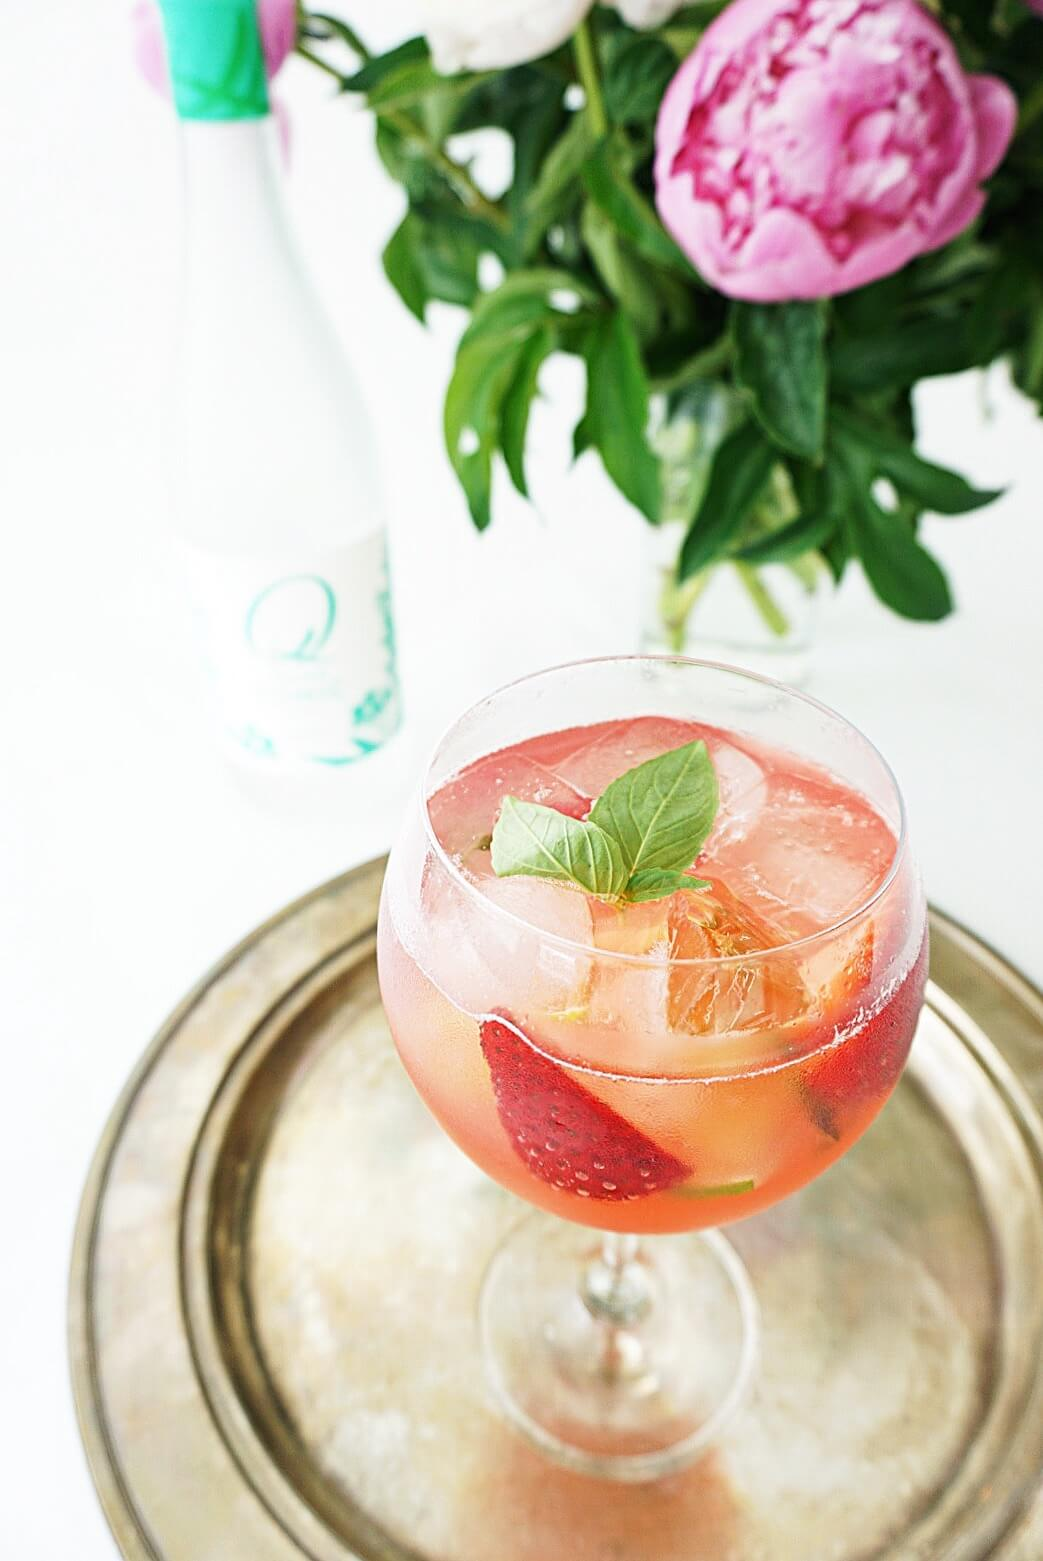 Strawberry Rhubarb G&T cocktail recipe - World Gin Day 2017 recipes